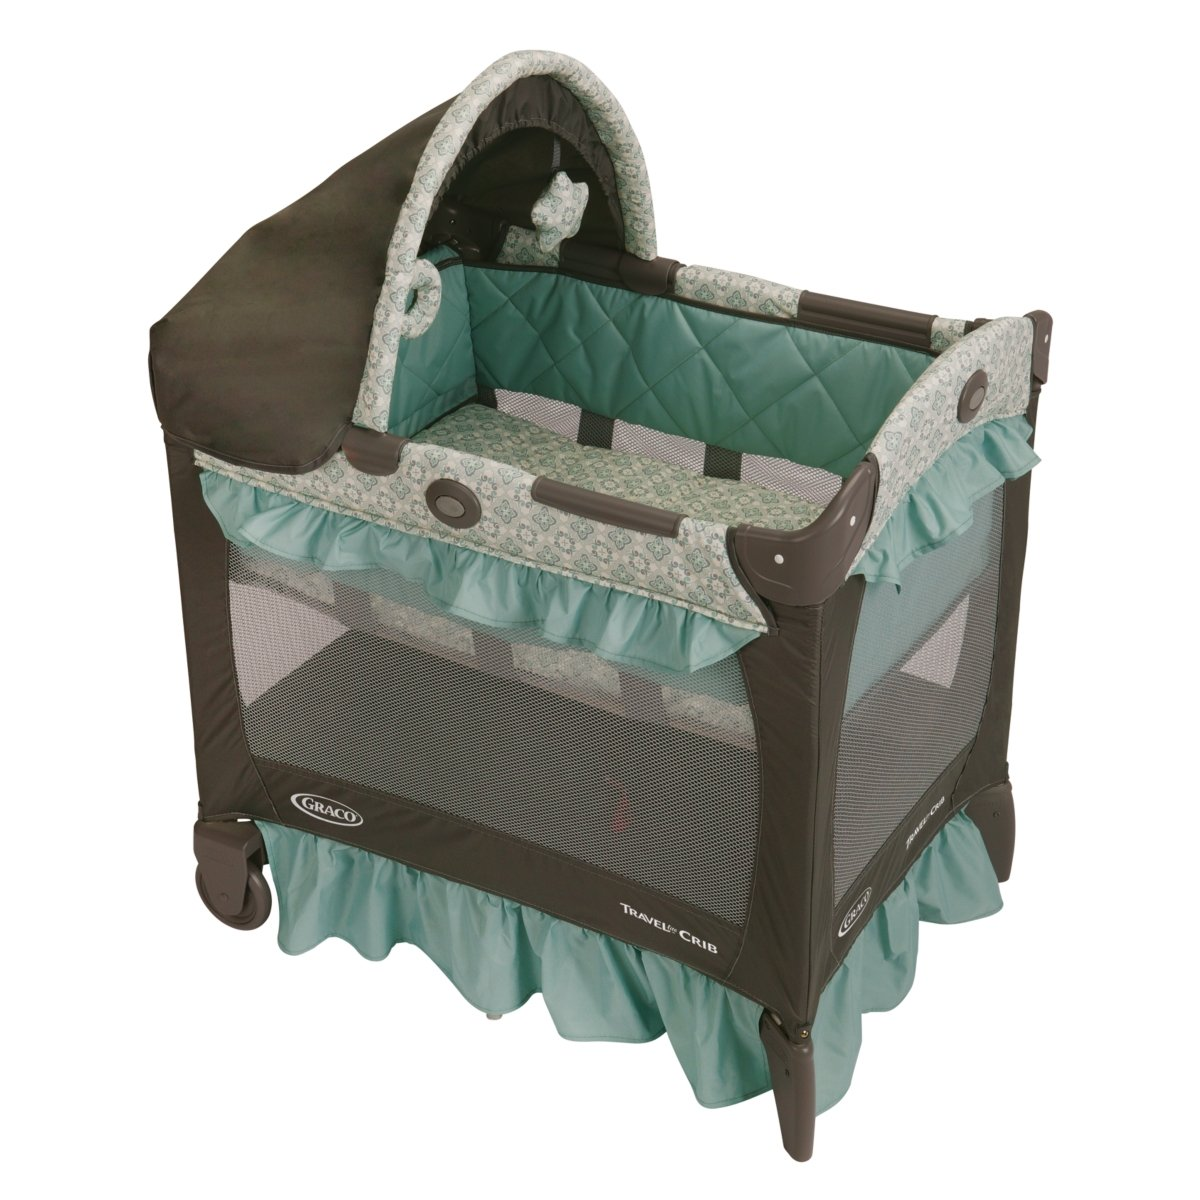 Gocrib adventure crib for sale - Gocrib Adventure Crib For Sale 35